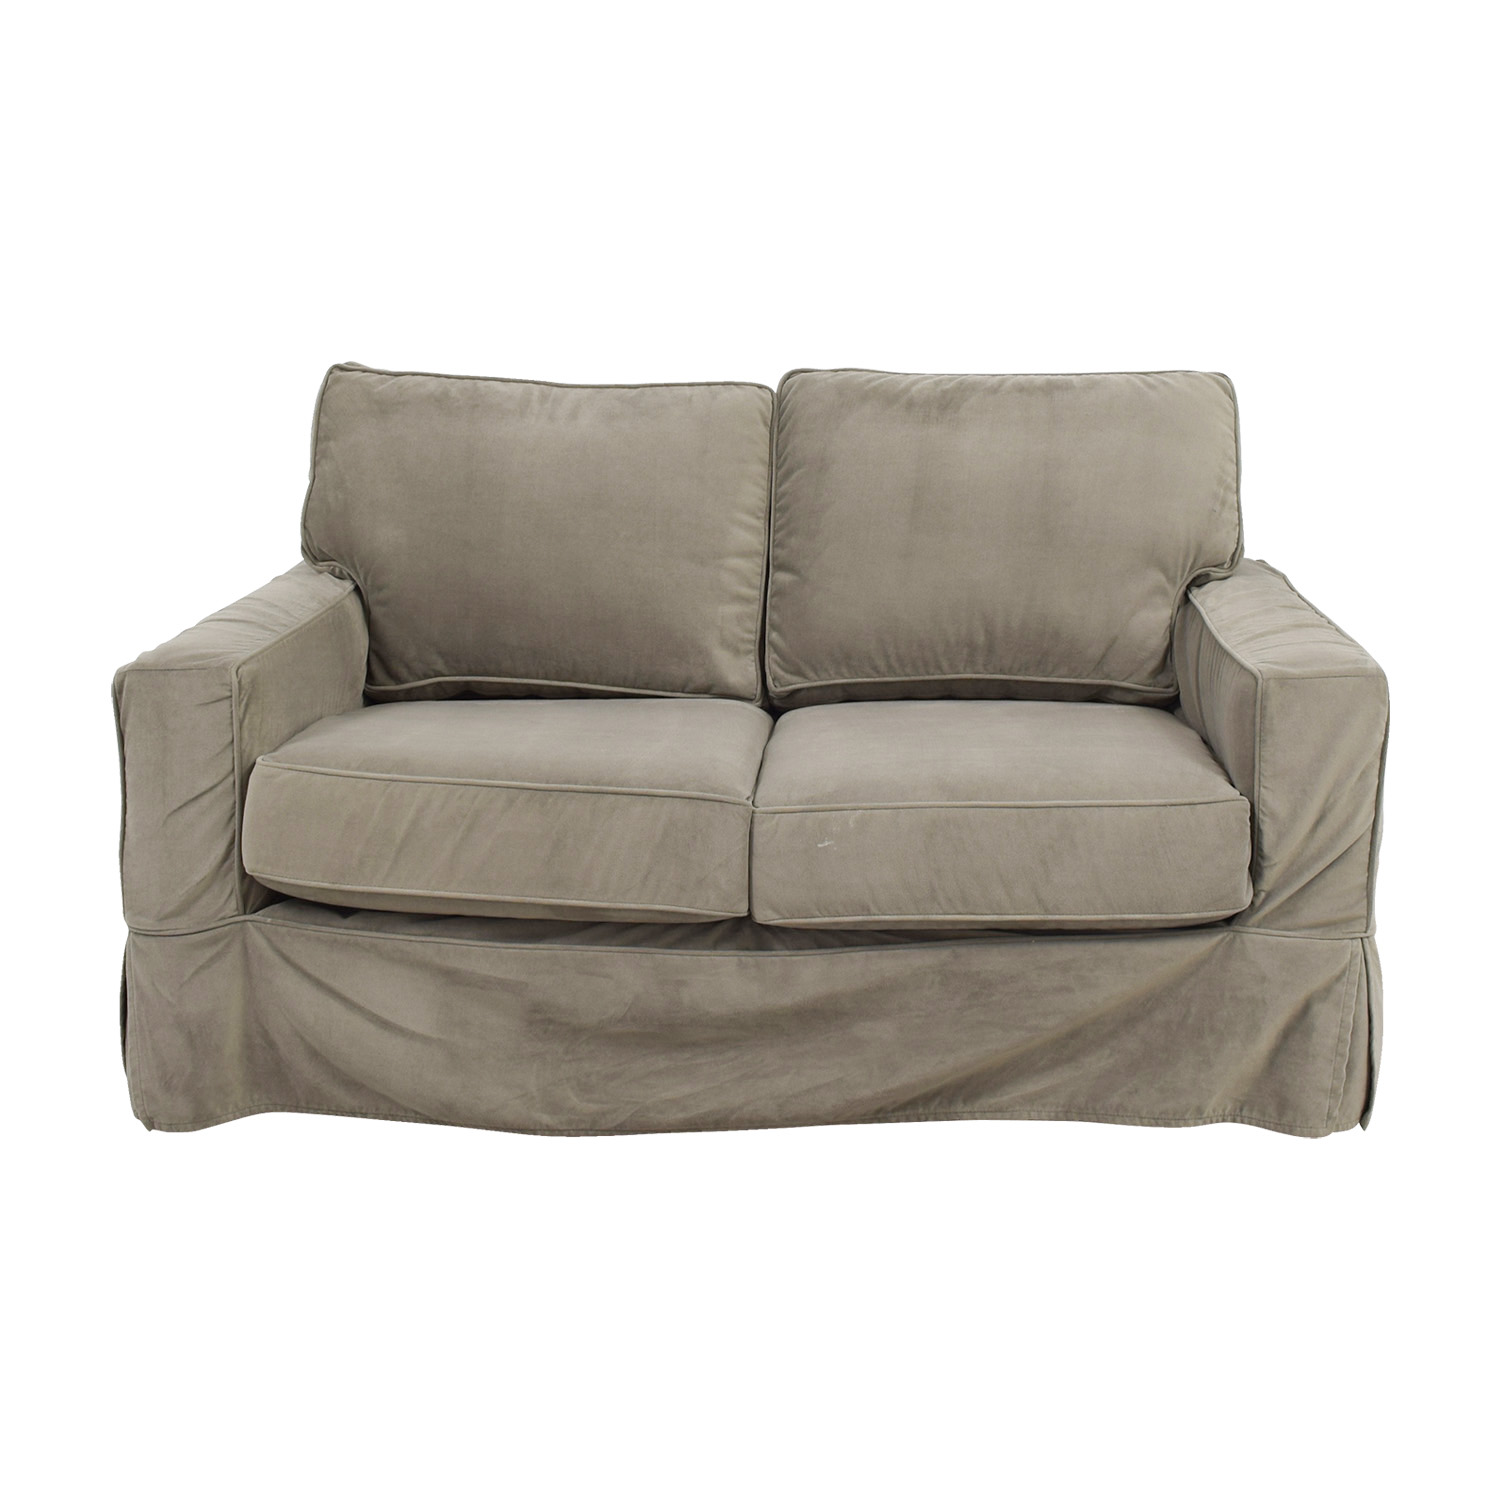 Pottery Barn Grey Comfort Square Arm Loveseat